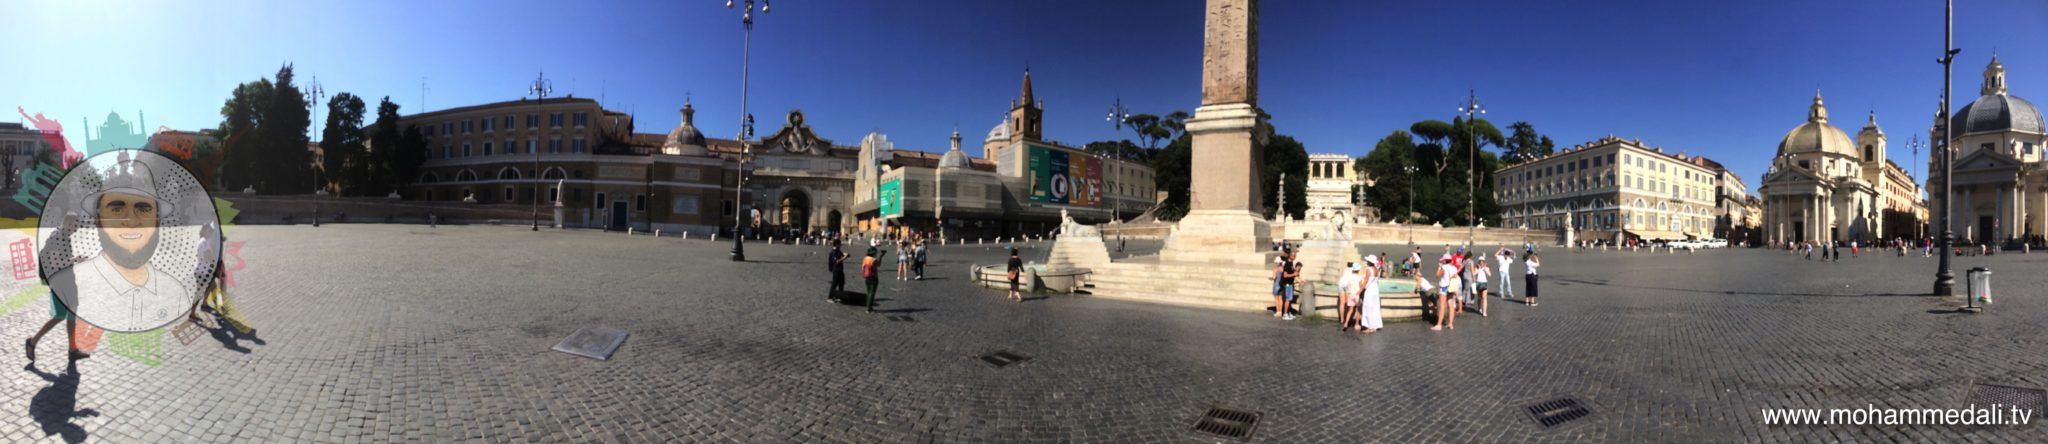 Vibrant people's square in Rome - Piazza del Popolo - in the summer days